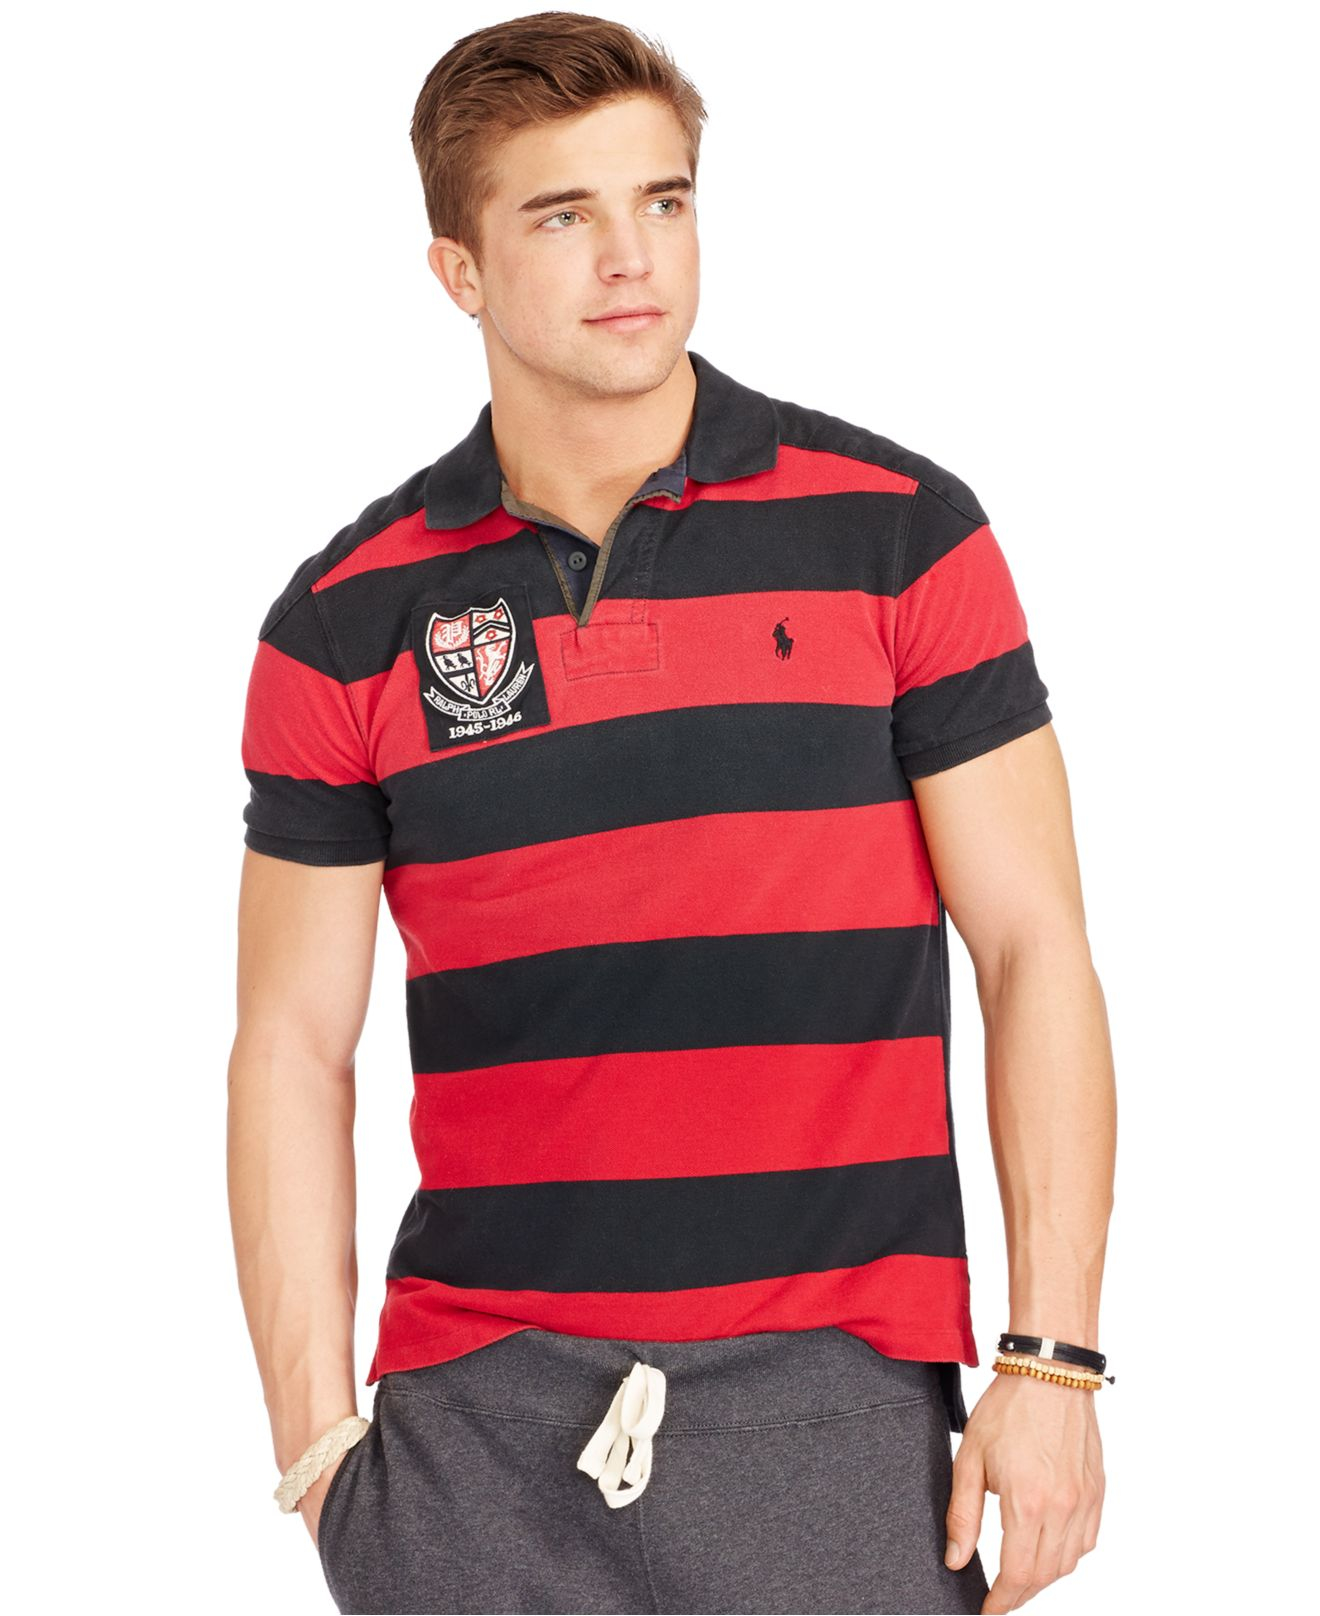 ccd0a9857cd ... best lyst polo ralph lauren custom fit pieced mesh rugby shirt in red  45827 64324